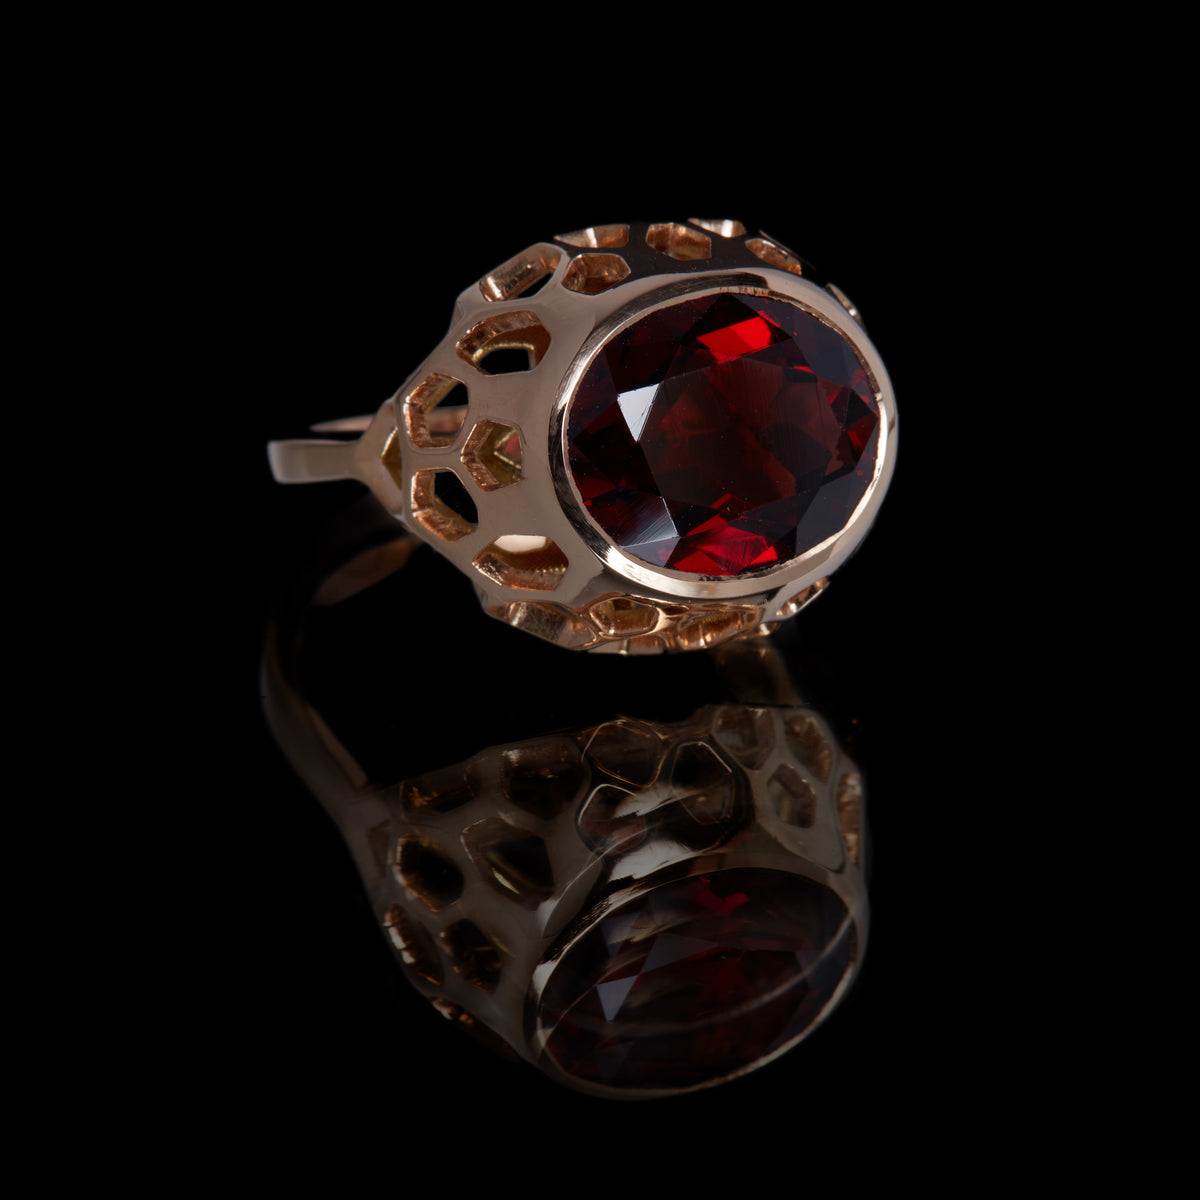 Guy and Max Oval Garnet Rose Gold Digital Nature, On Ice Cocktail Ring, three quarter front view